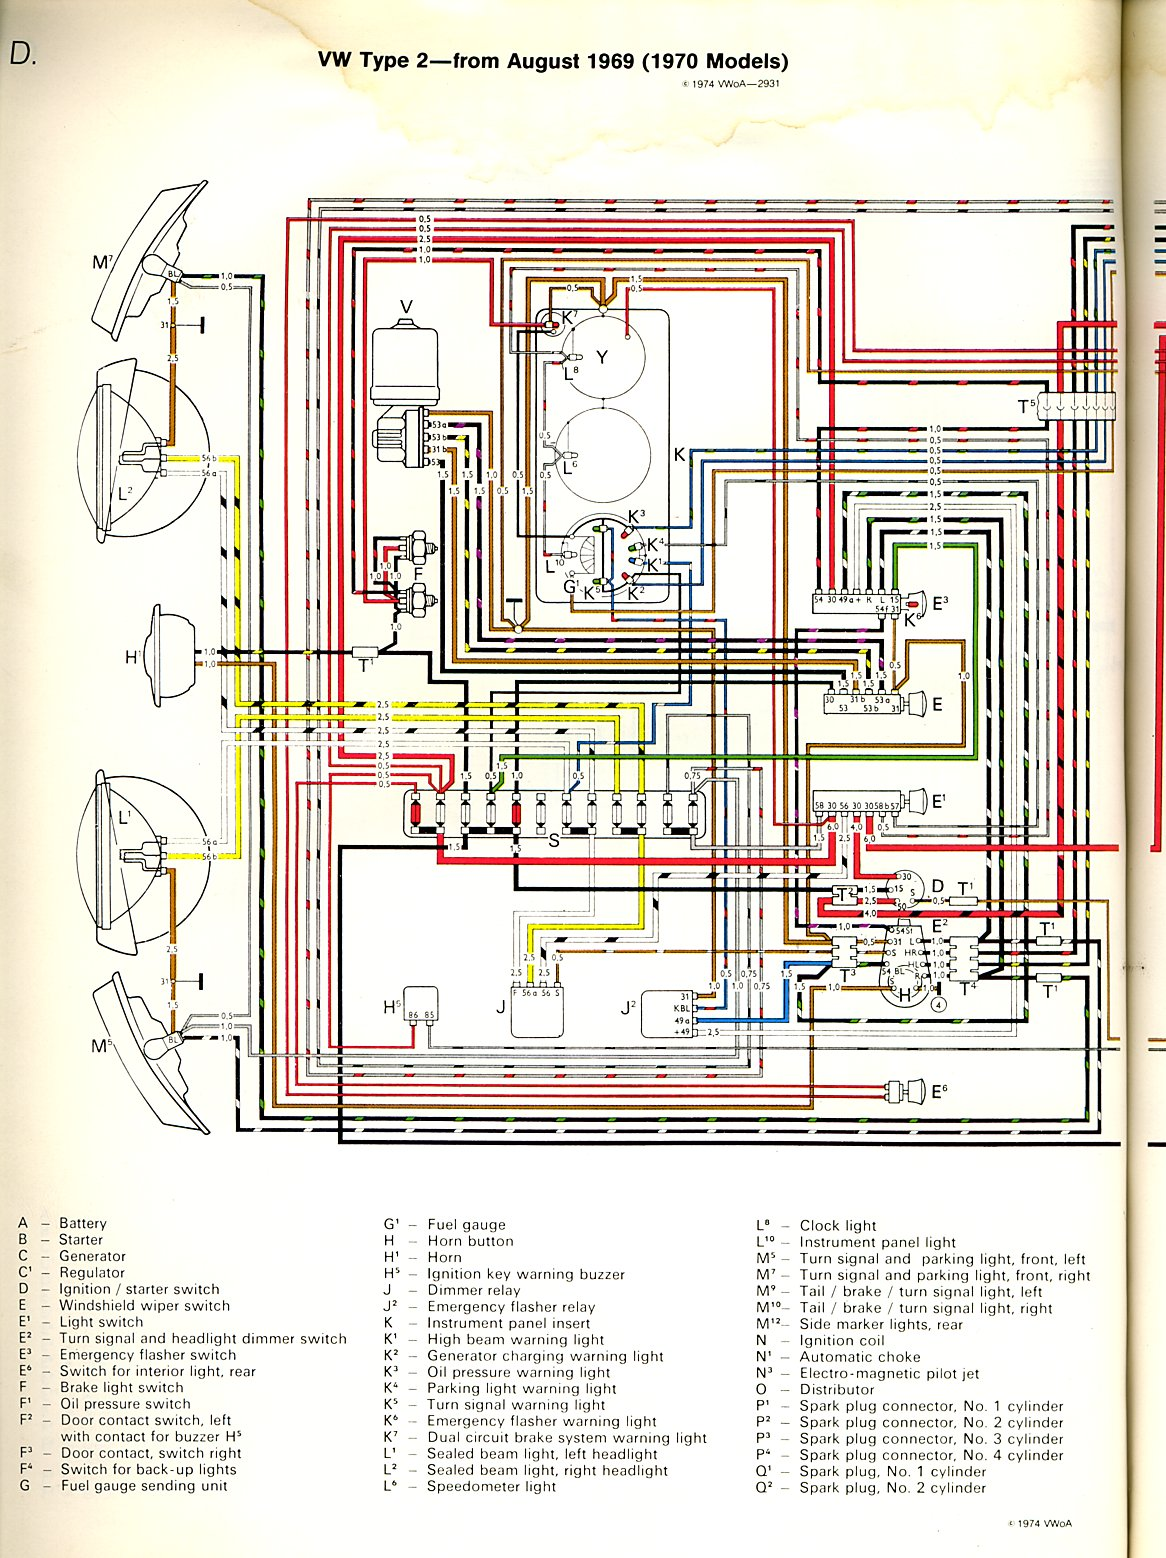 baybus_70a thesamba com type 2 wiring diagrams vw t4 fuse box wiring diagram at crackthecode.co